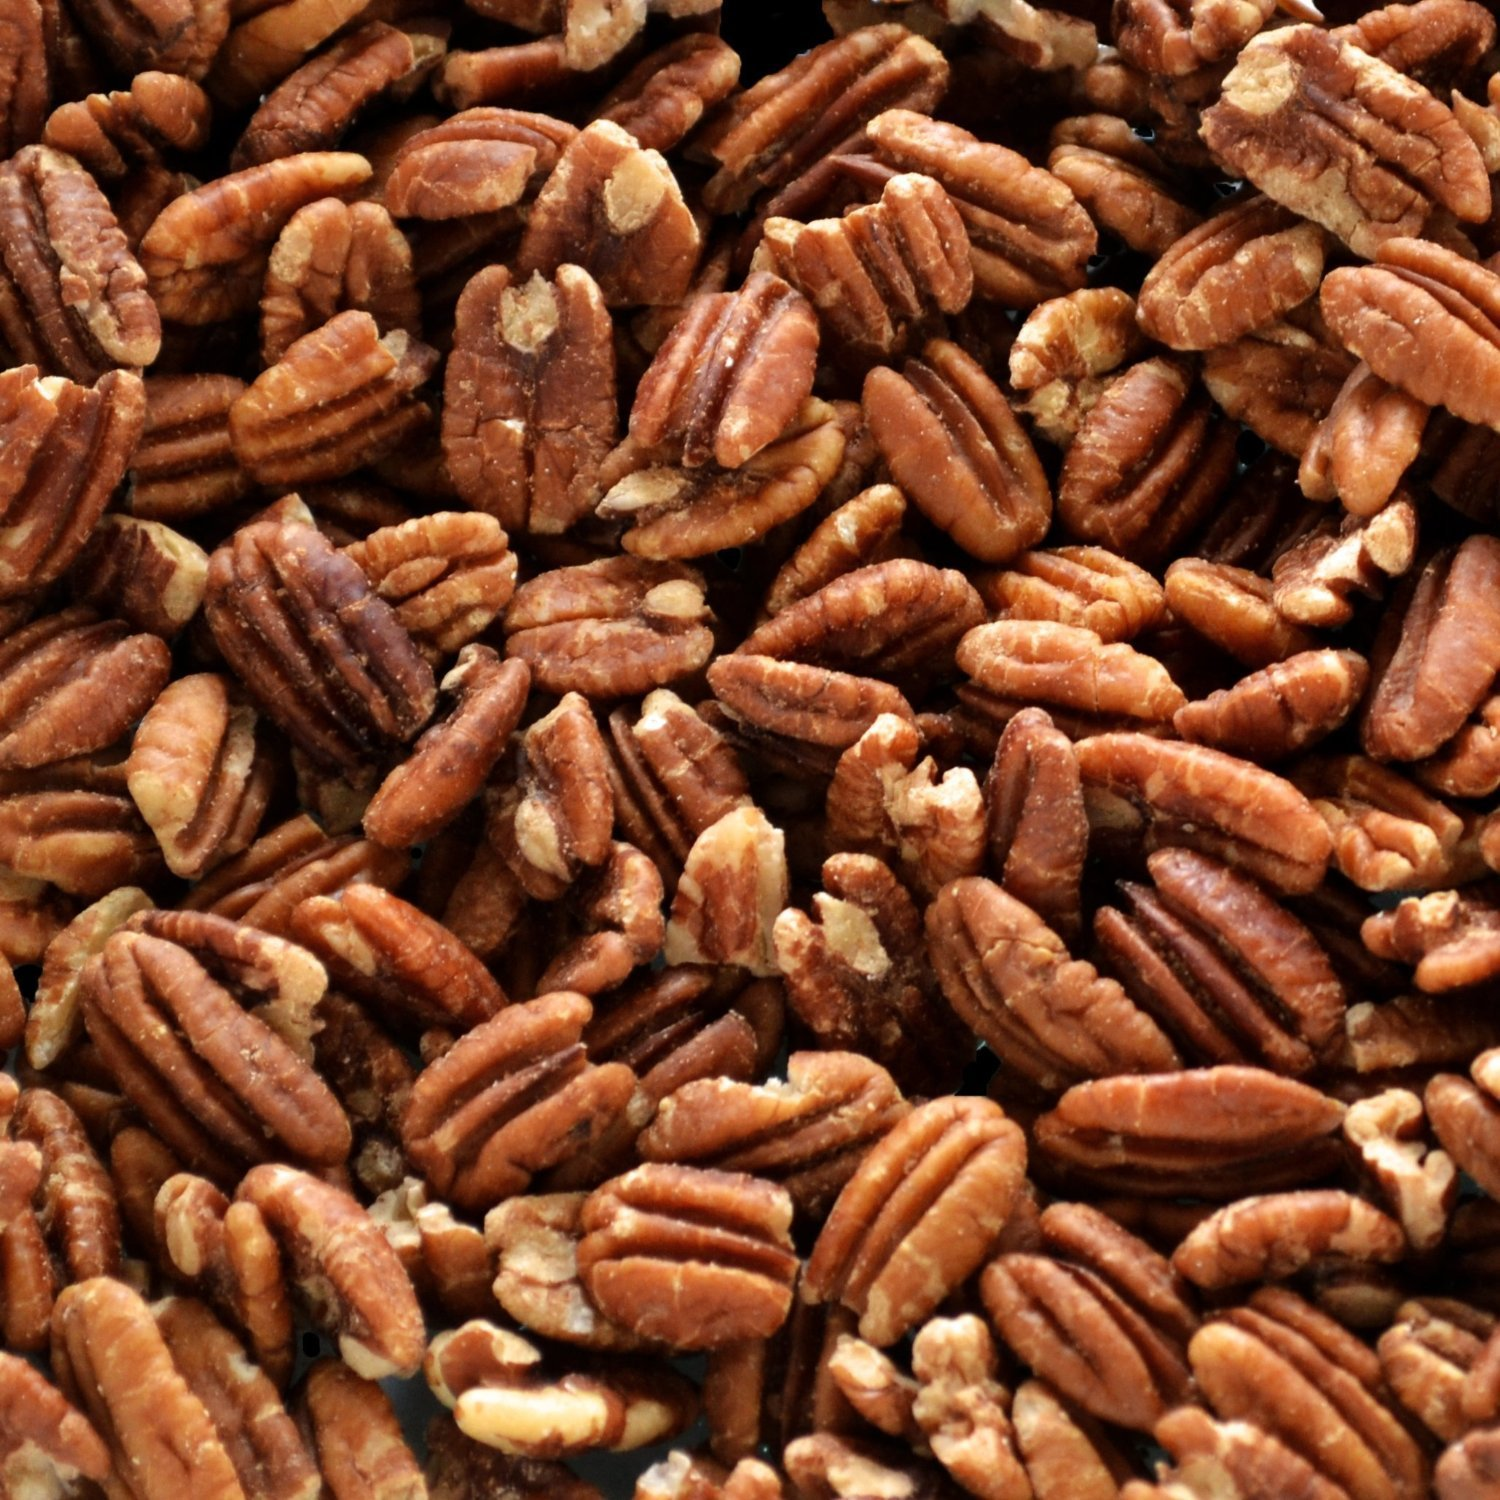 Native Pecan Halves, Family Recipe Crispy, Soaked and Dried with Sea Salt, Bulk 20 Lb. by PecanShop.com